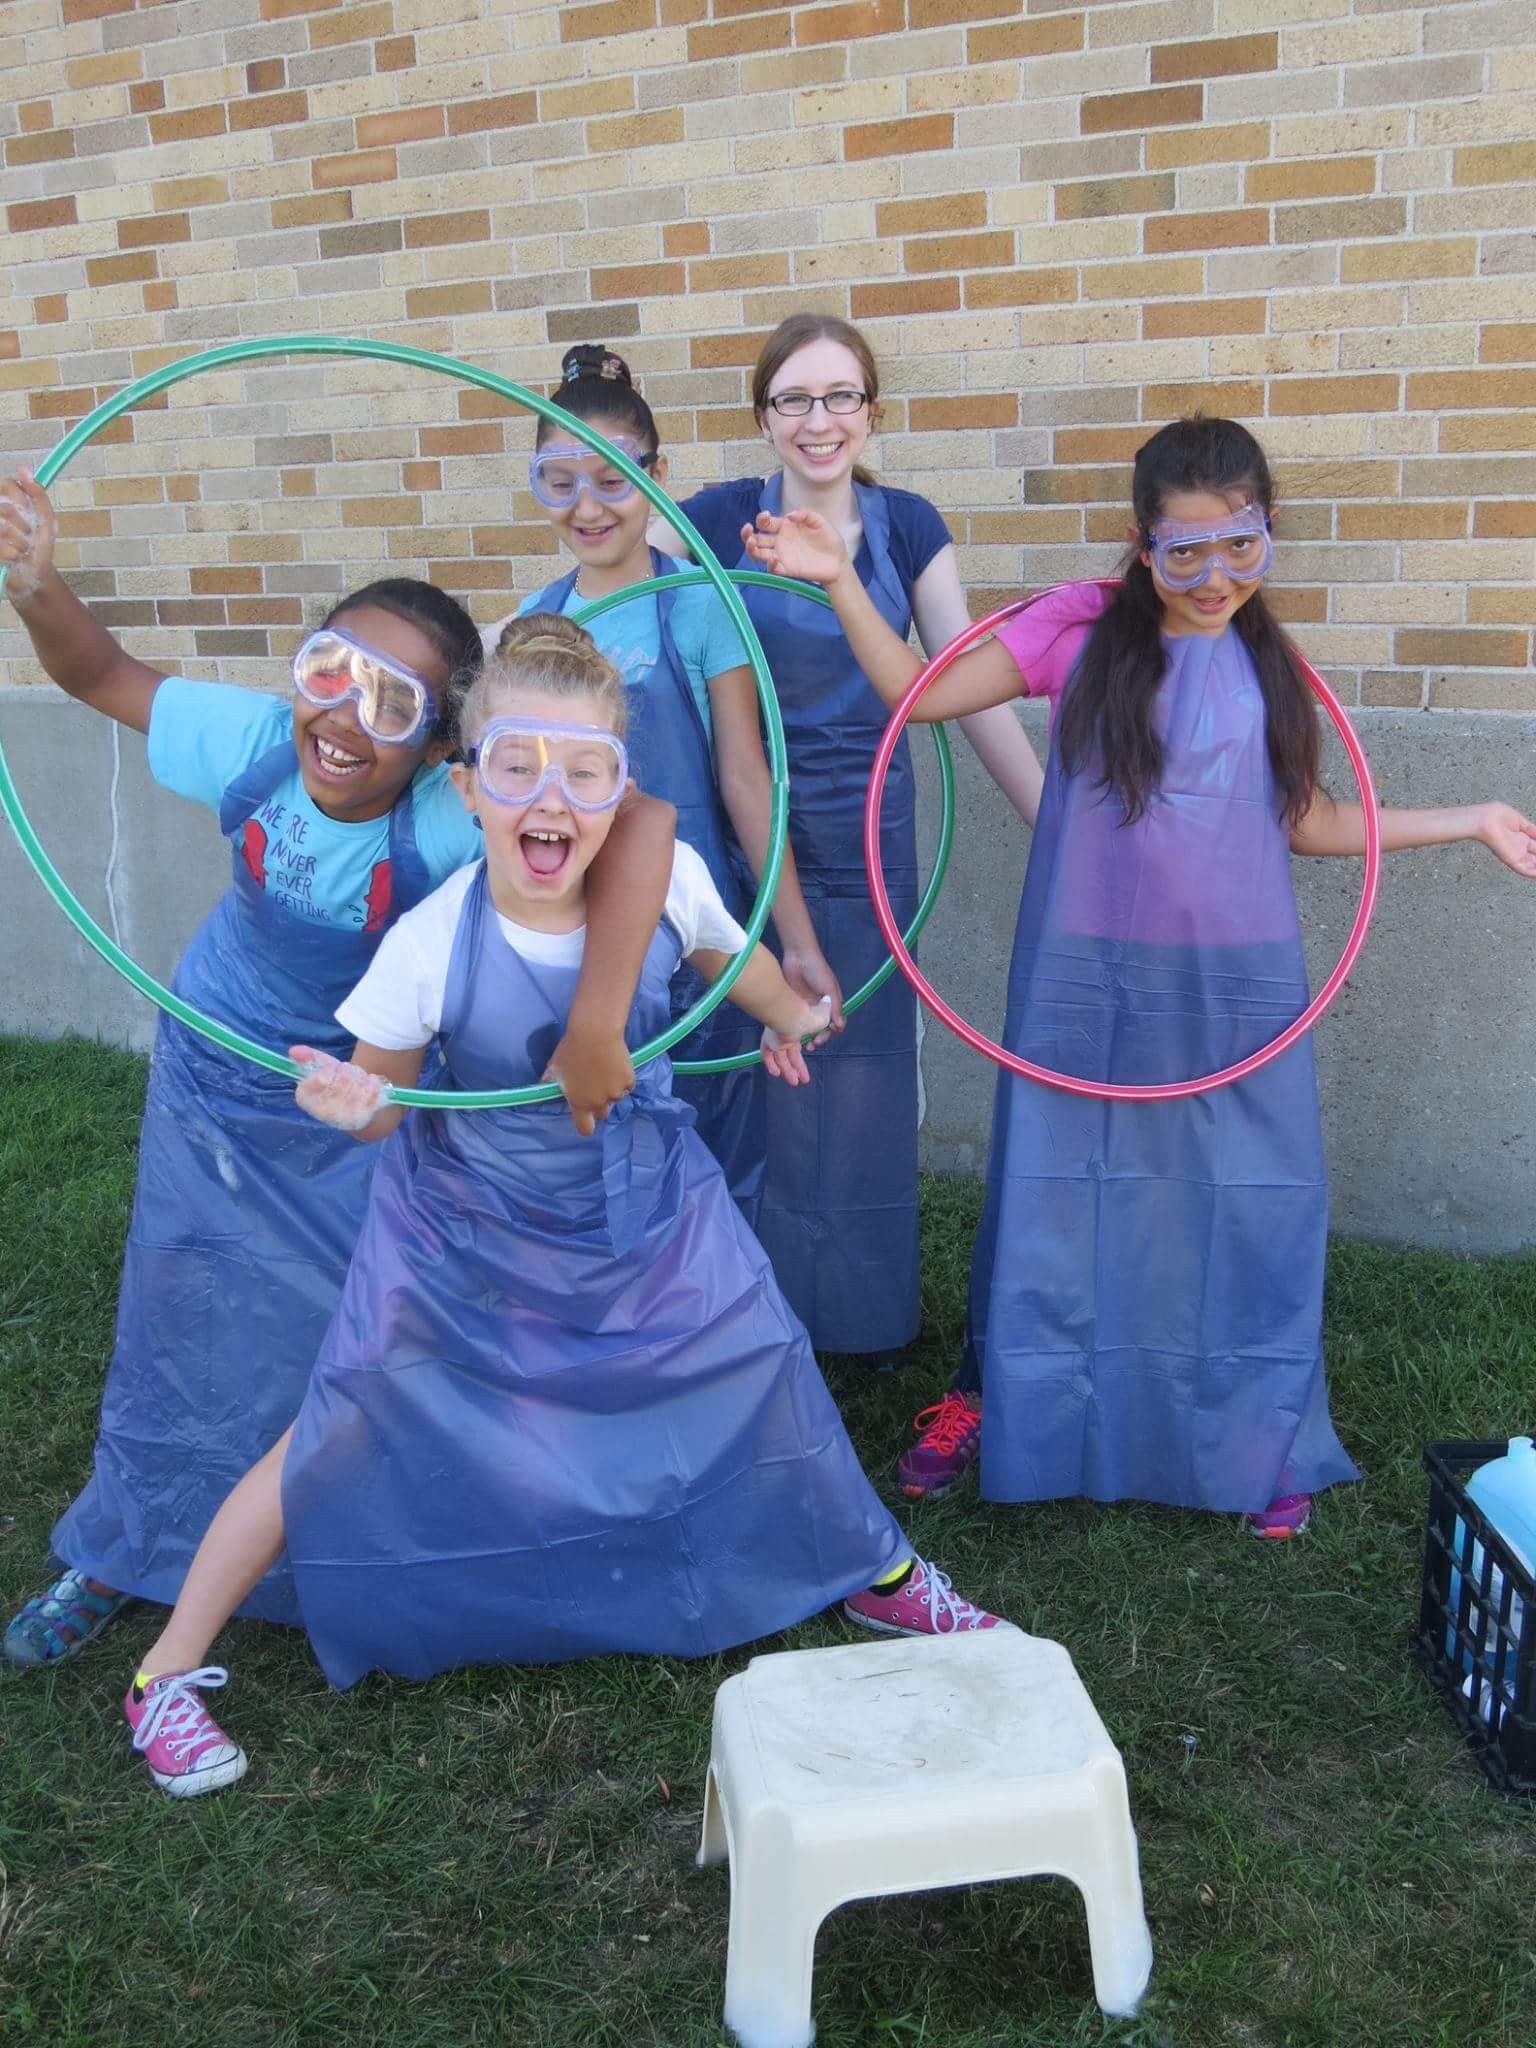 Erin McKenny (back row), works with some of her students from the Curiosity Science Program she created for her Girl Scout Gold Award project.